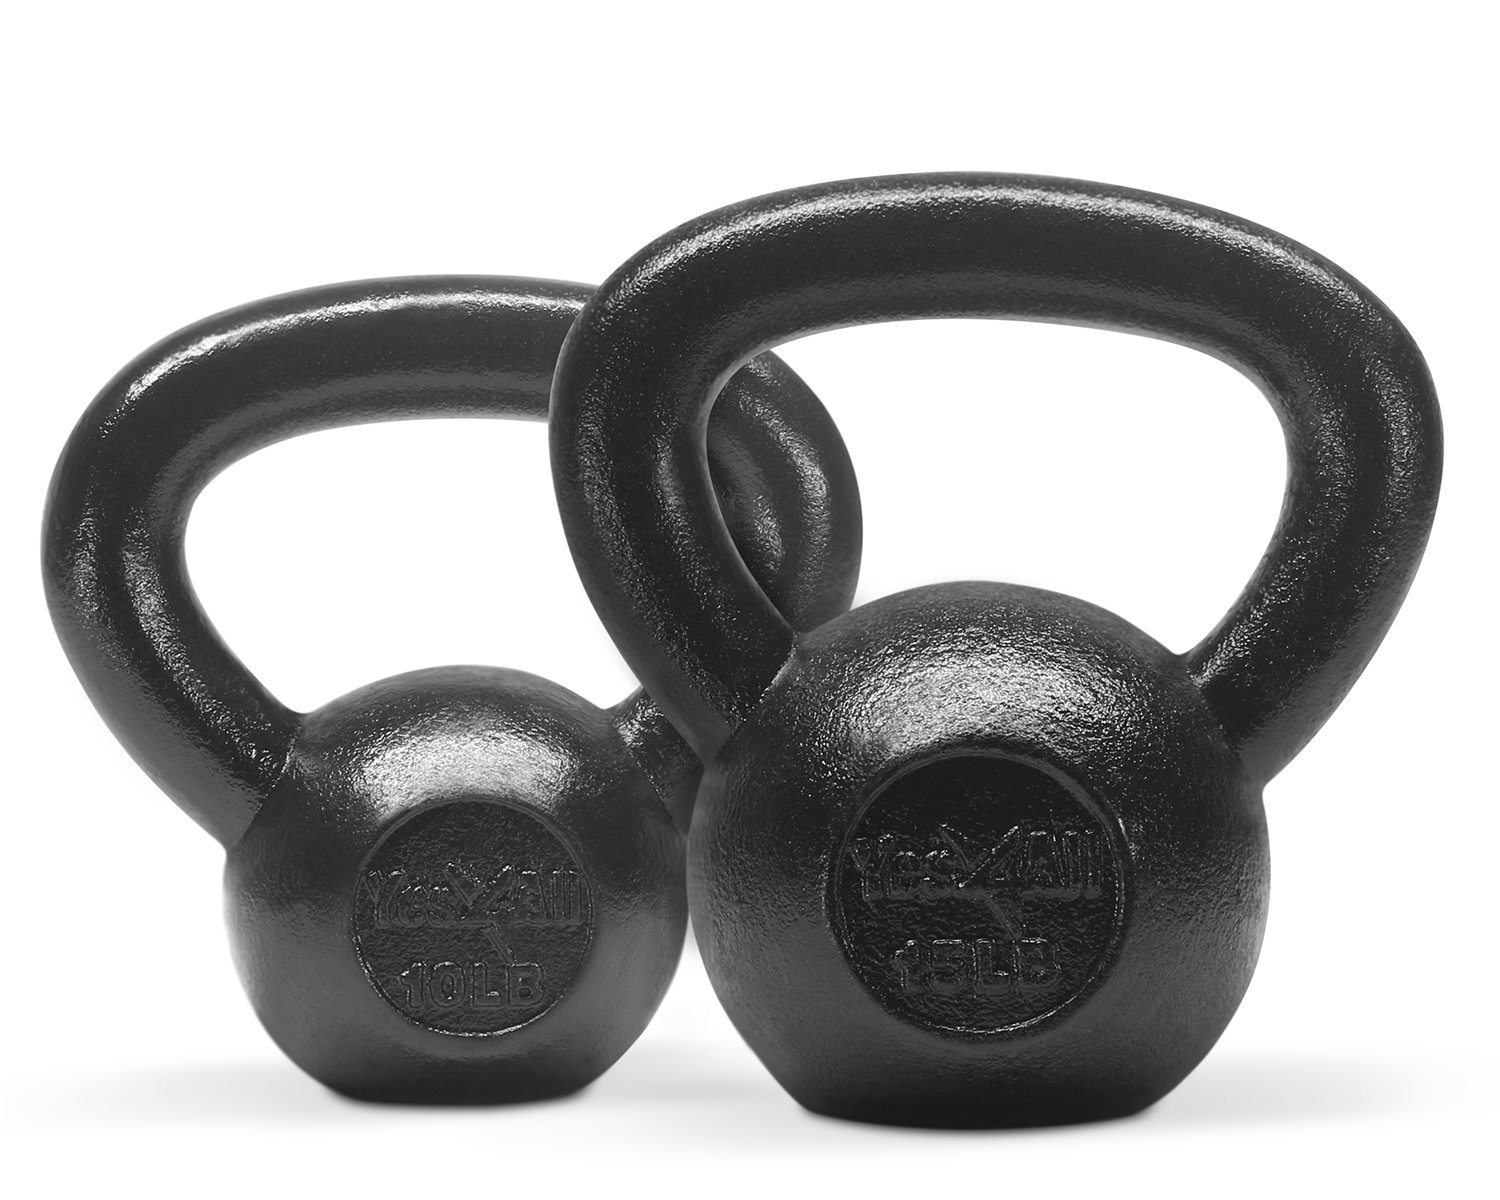 Yes4All Combo Cast Iron Kettlebell Weight Sets – Great for Full Body Workout and Strength Training – Kettlebells 10 15 lbs (Black)